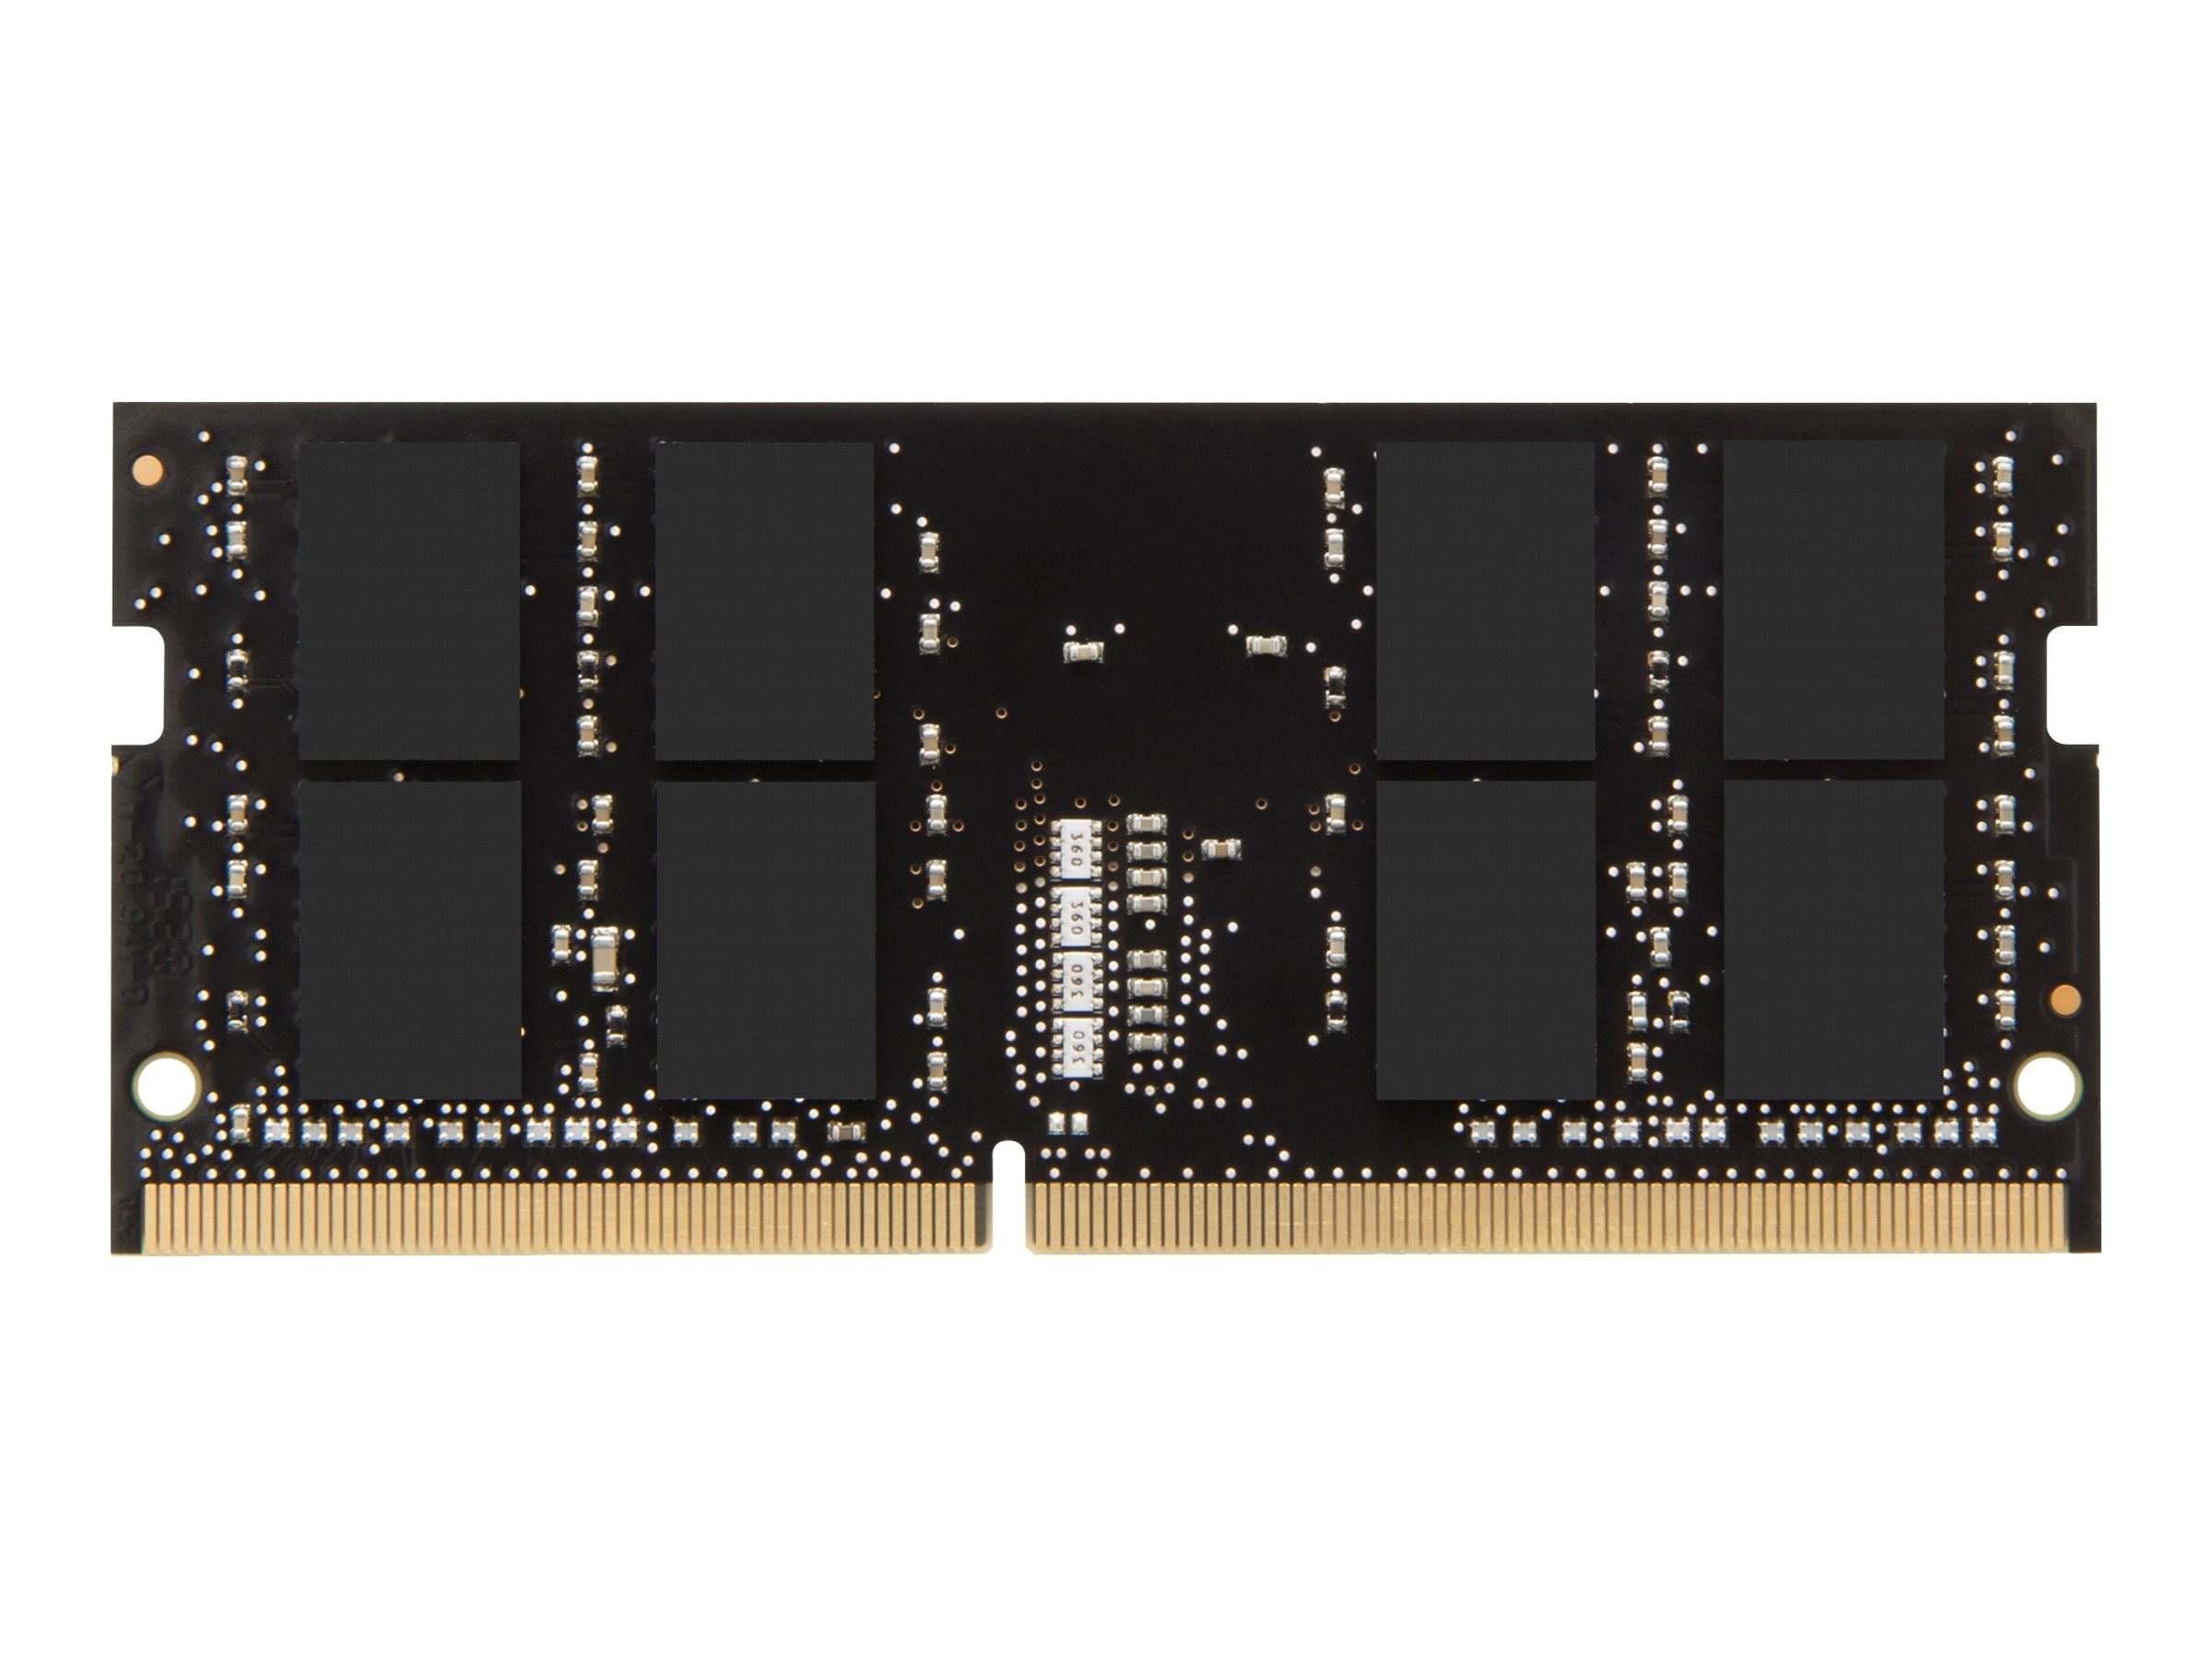 Kingston 4GB PC4-19200 260-pin DDR4 SDRAM SODIMM, HX424S14IB/4